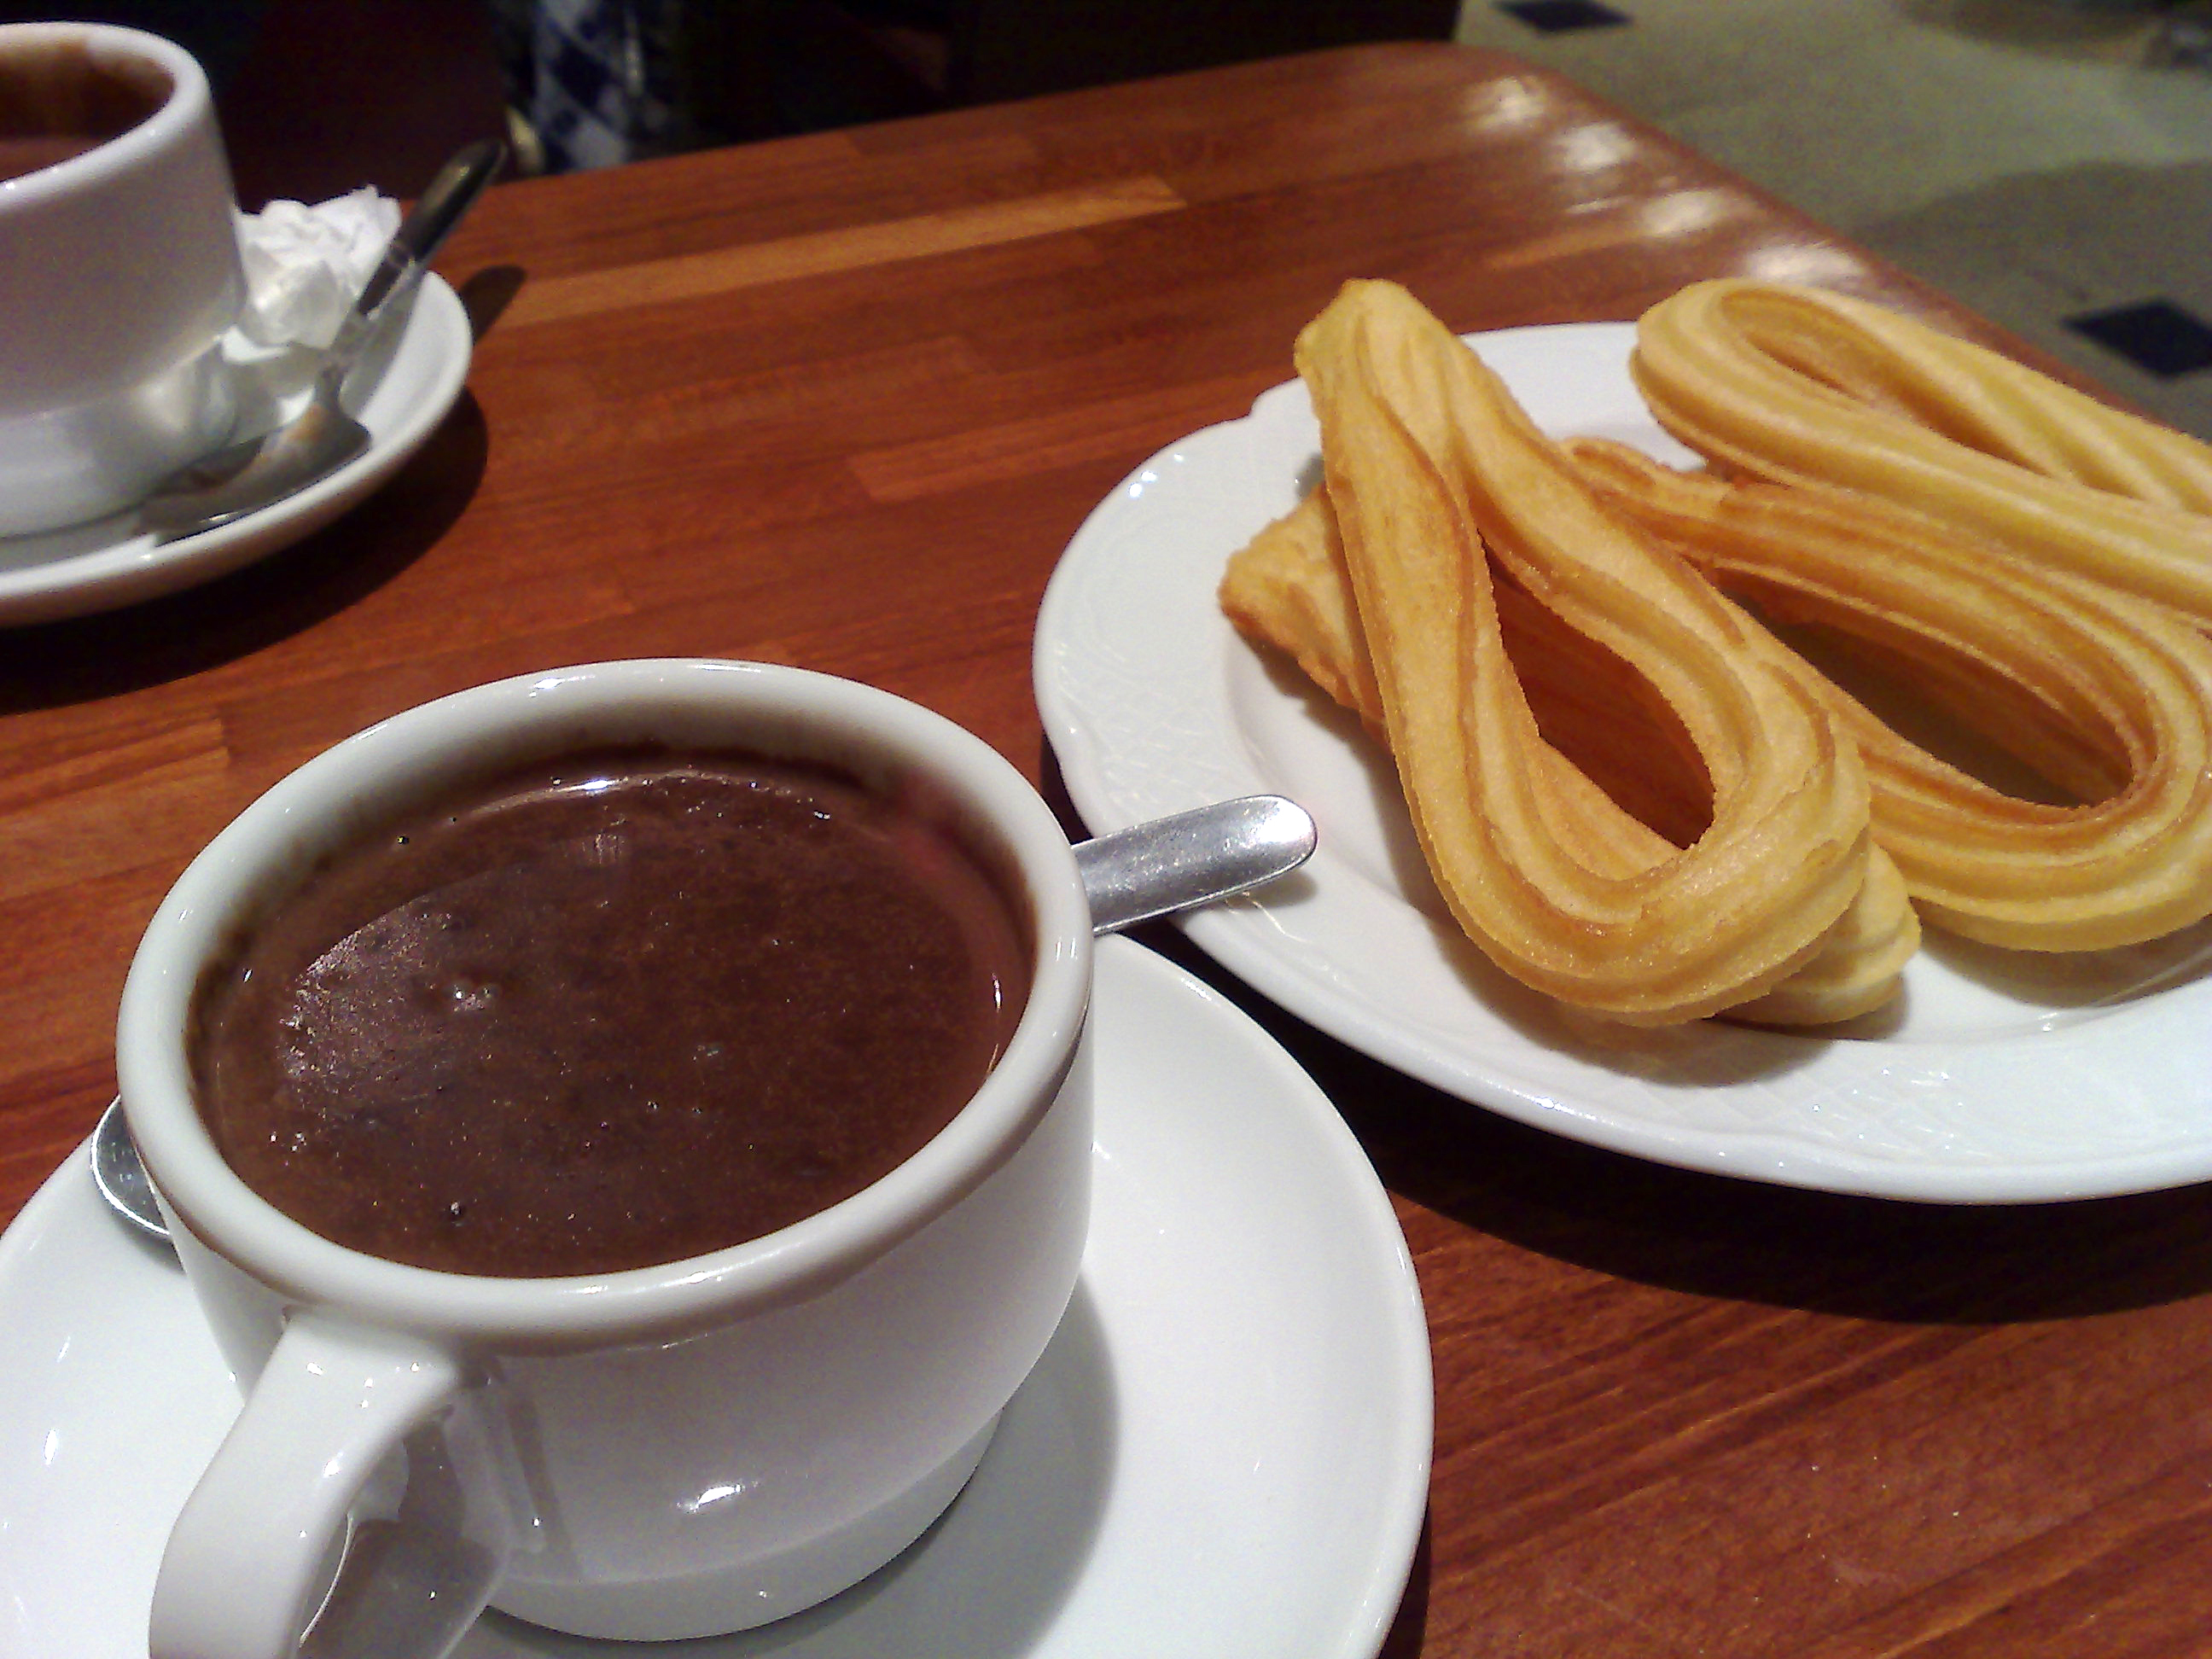 File:Chocolate con churros en Barcelona.jpg - Wikimedia Commons